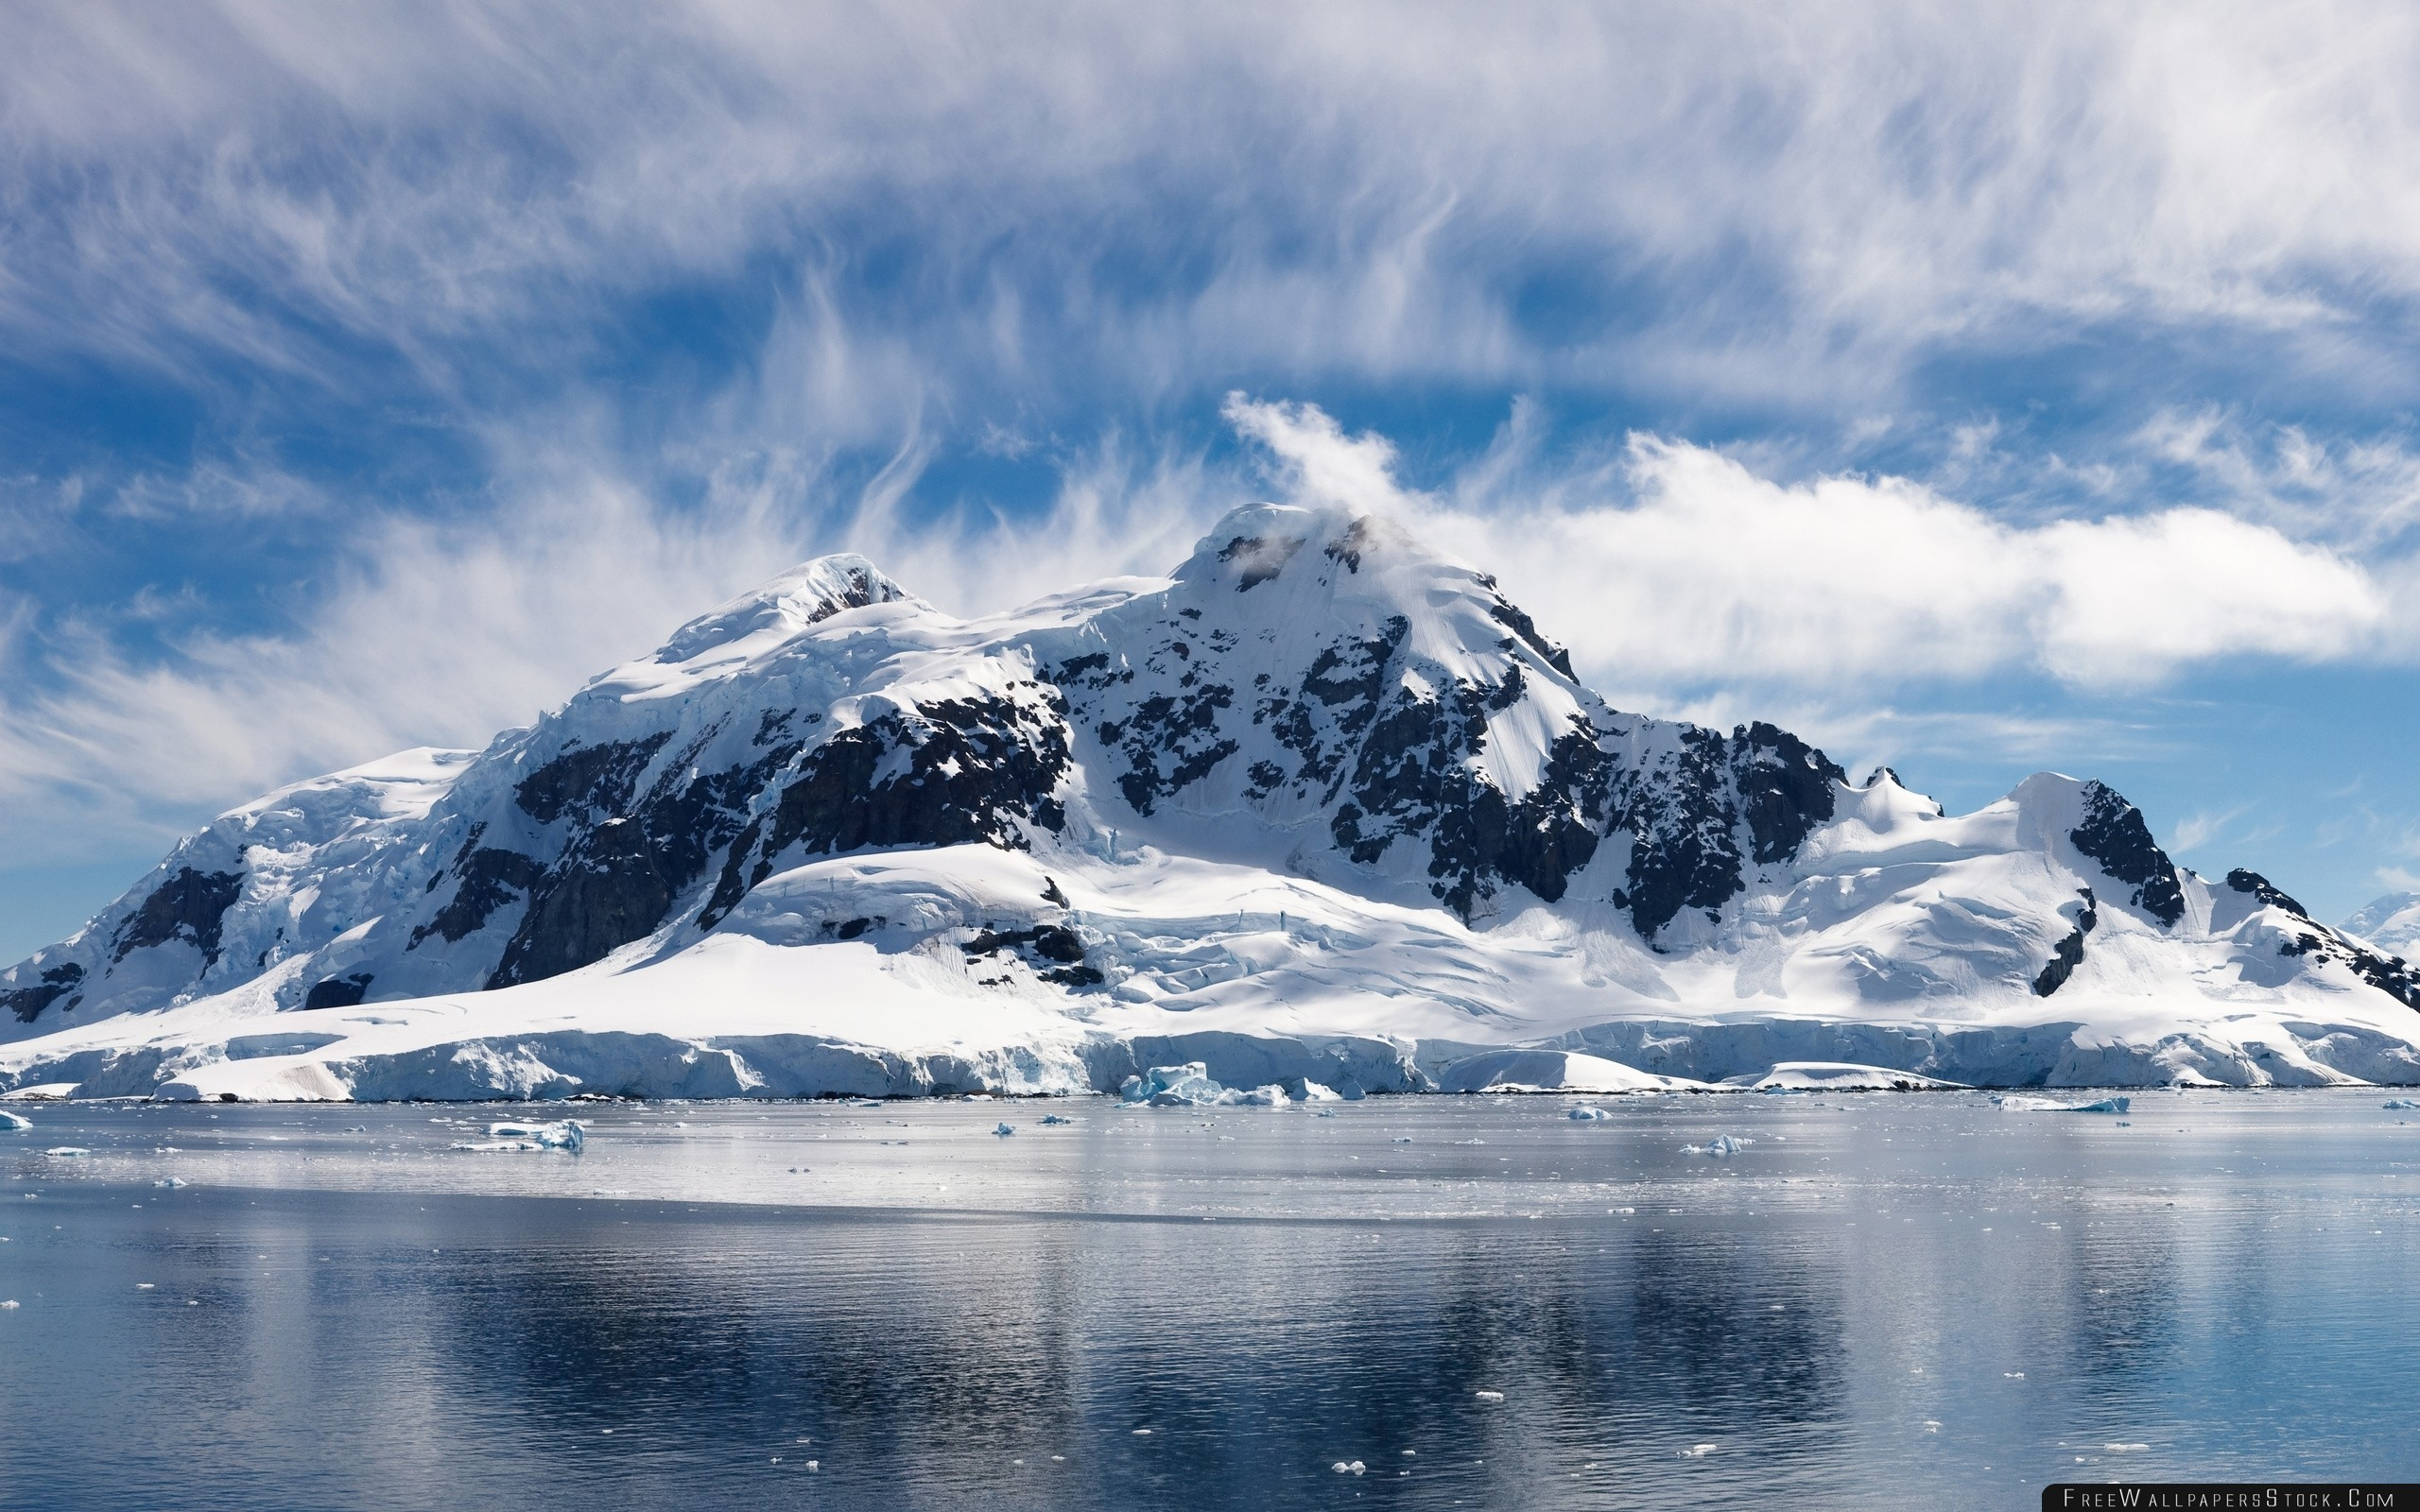 Download Free Wallpaper Top Snow Covered Cold Mountains Clouds Sky Merge Ice Frost Freshness